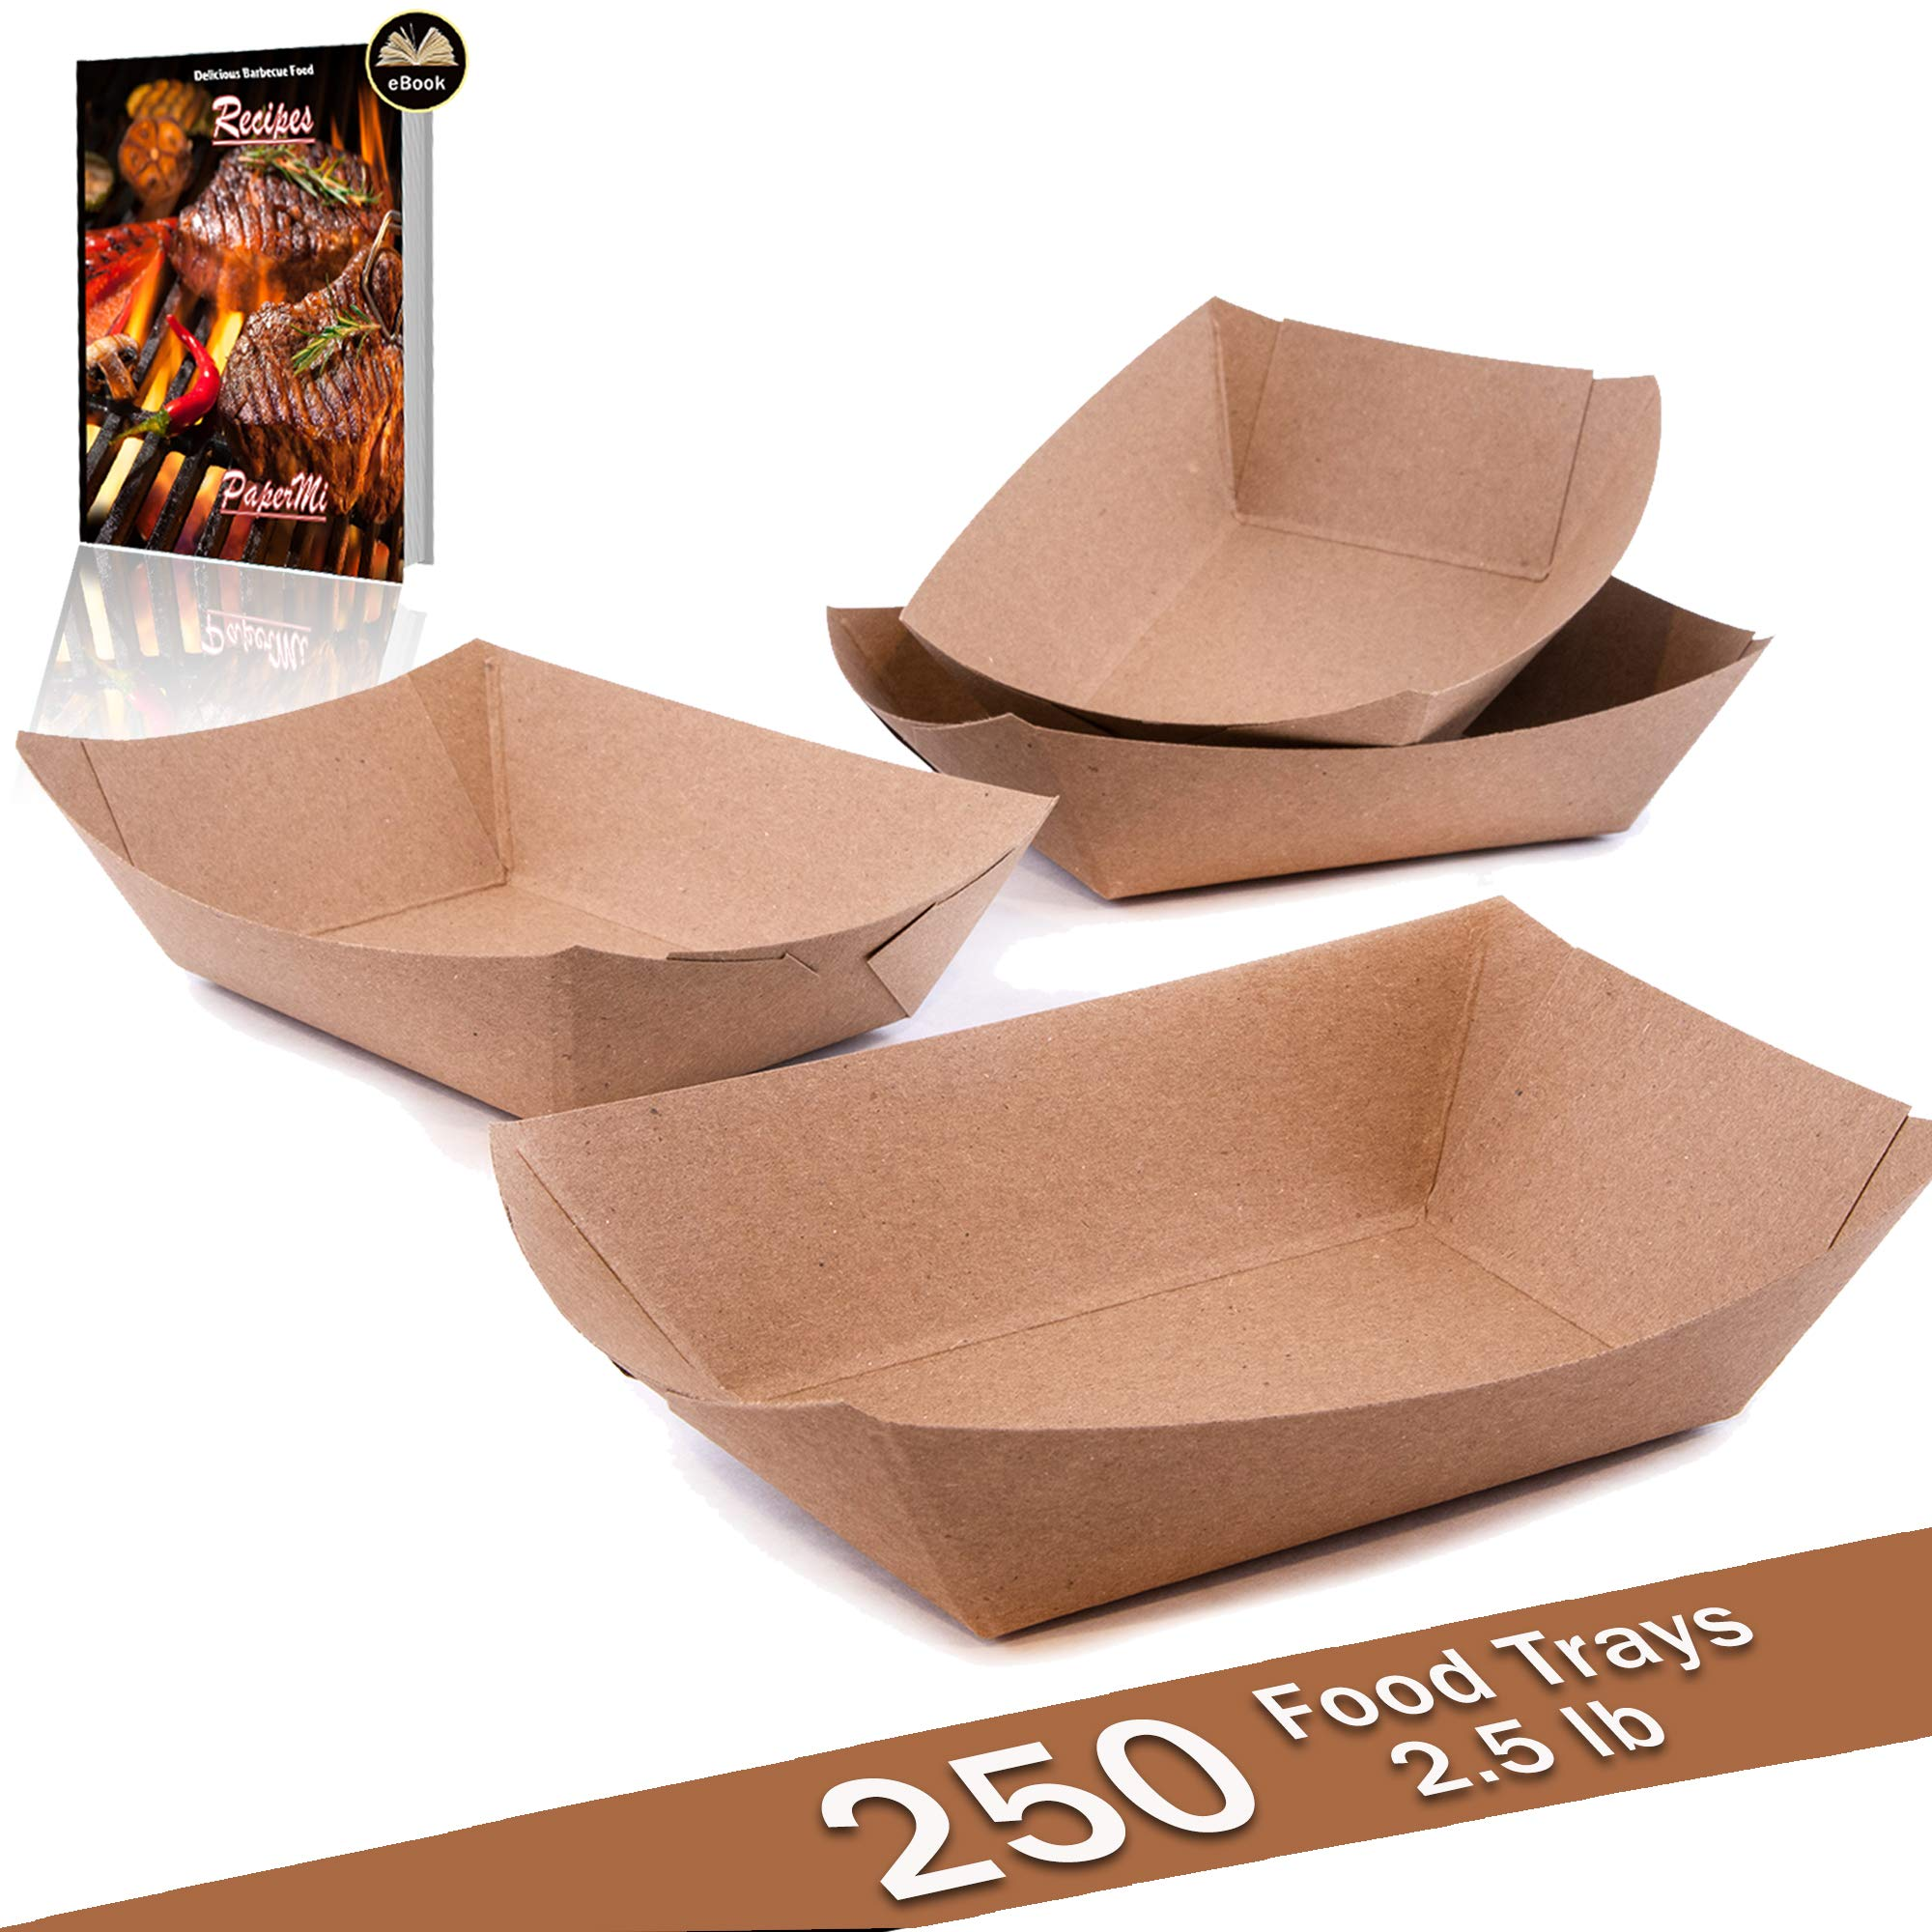 Brown Kraft Paper Food Tray, Capacity of 2.5lb, Eco-friendly Kraft Food Trays USA Made, FDA Approved Recyclable & Biodegradable, Convenient for all Event: Party, Camping, Carnival, BBQ… (250pc)